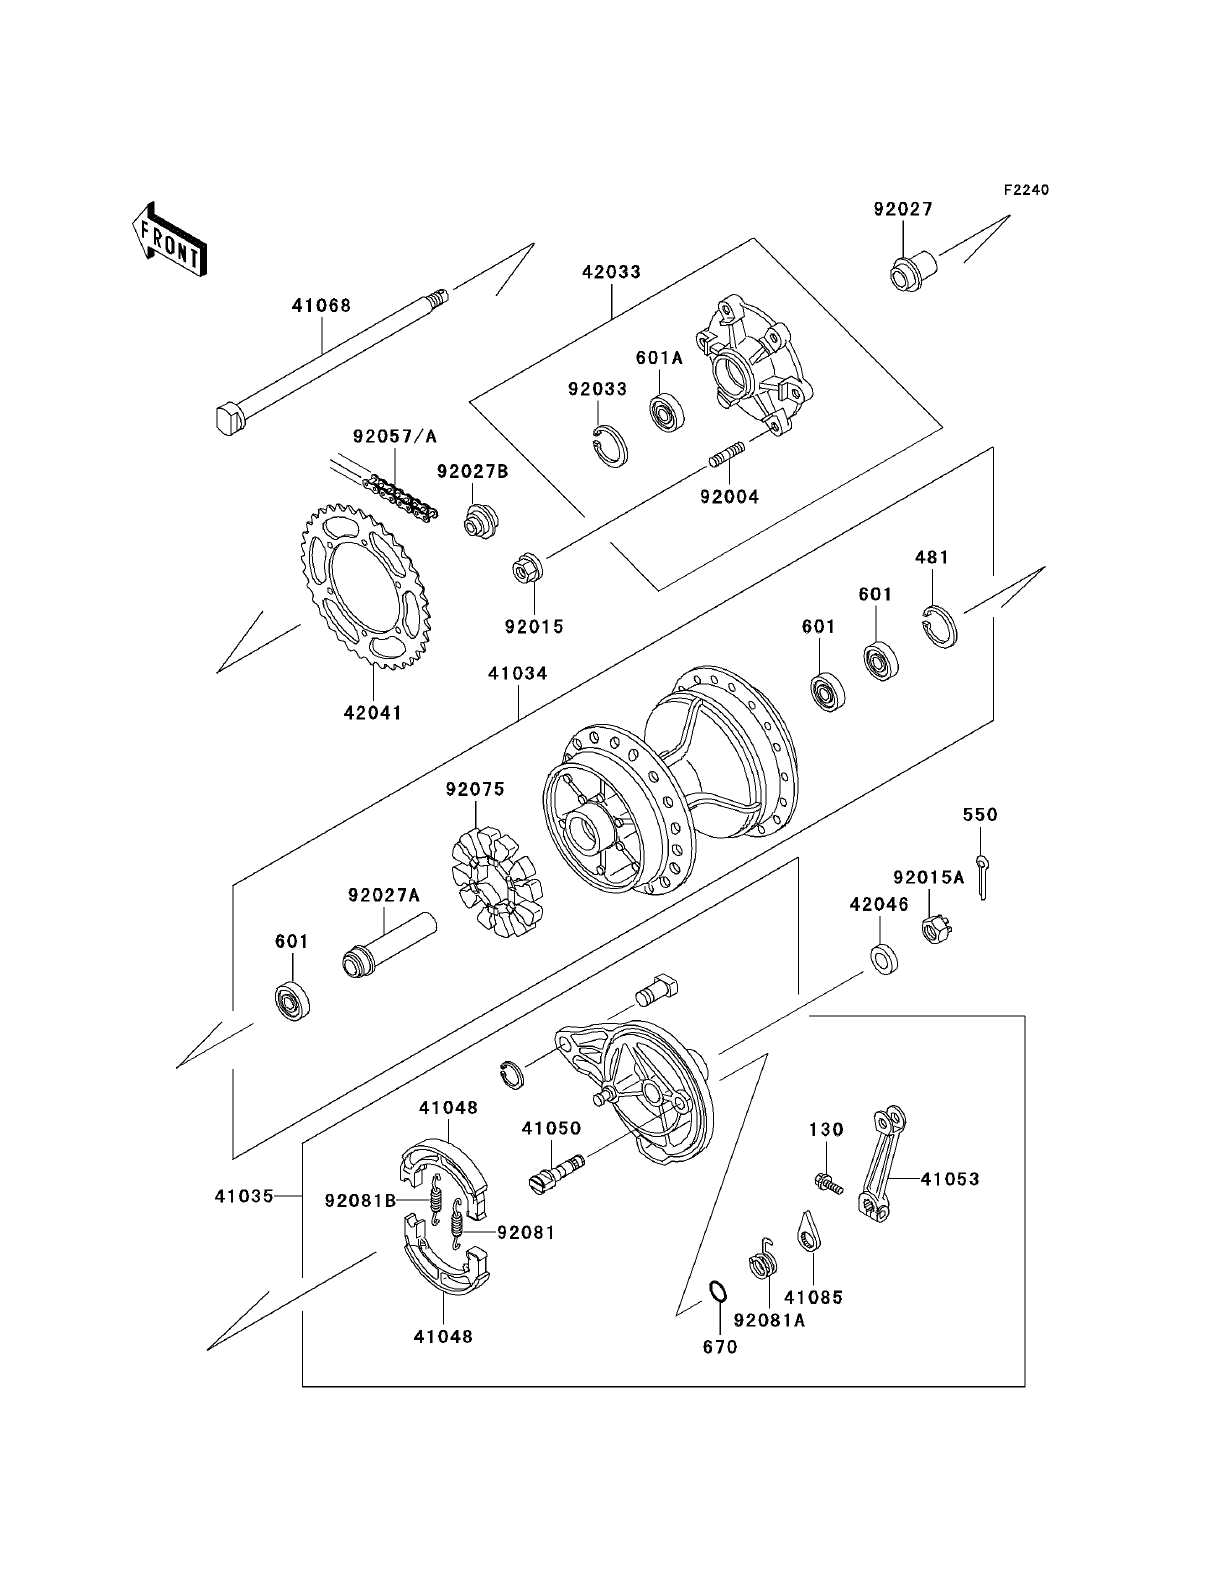 kawasaki bayou 220 ignition switch wiring diagram kawasaki kawasaki klr650 motorcycle wiring diagrams